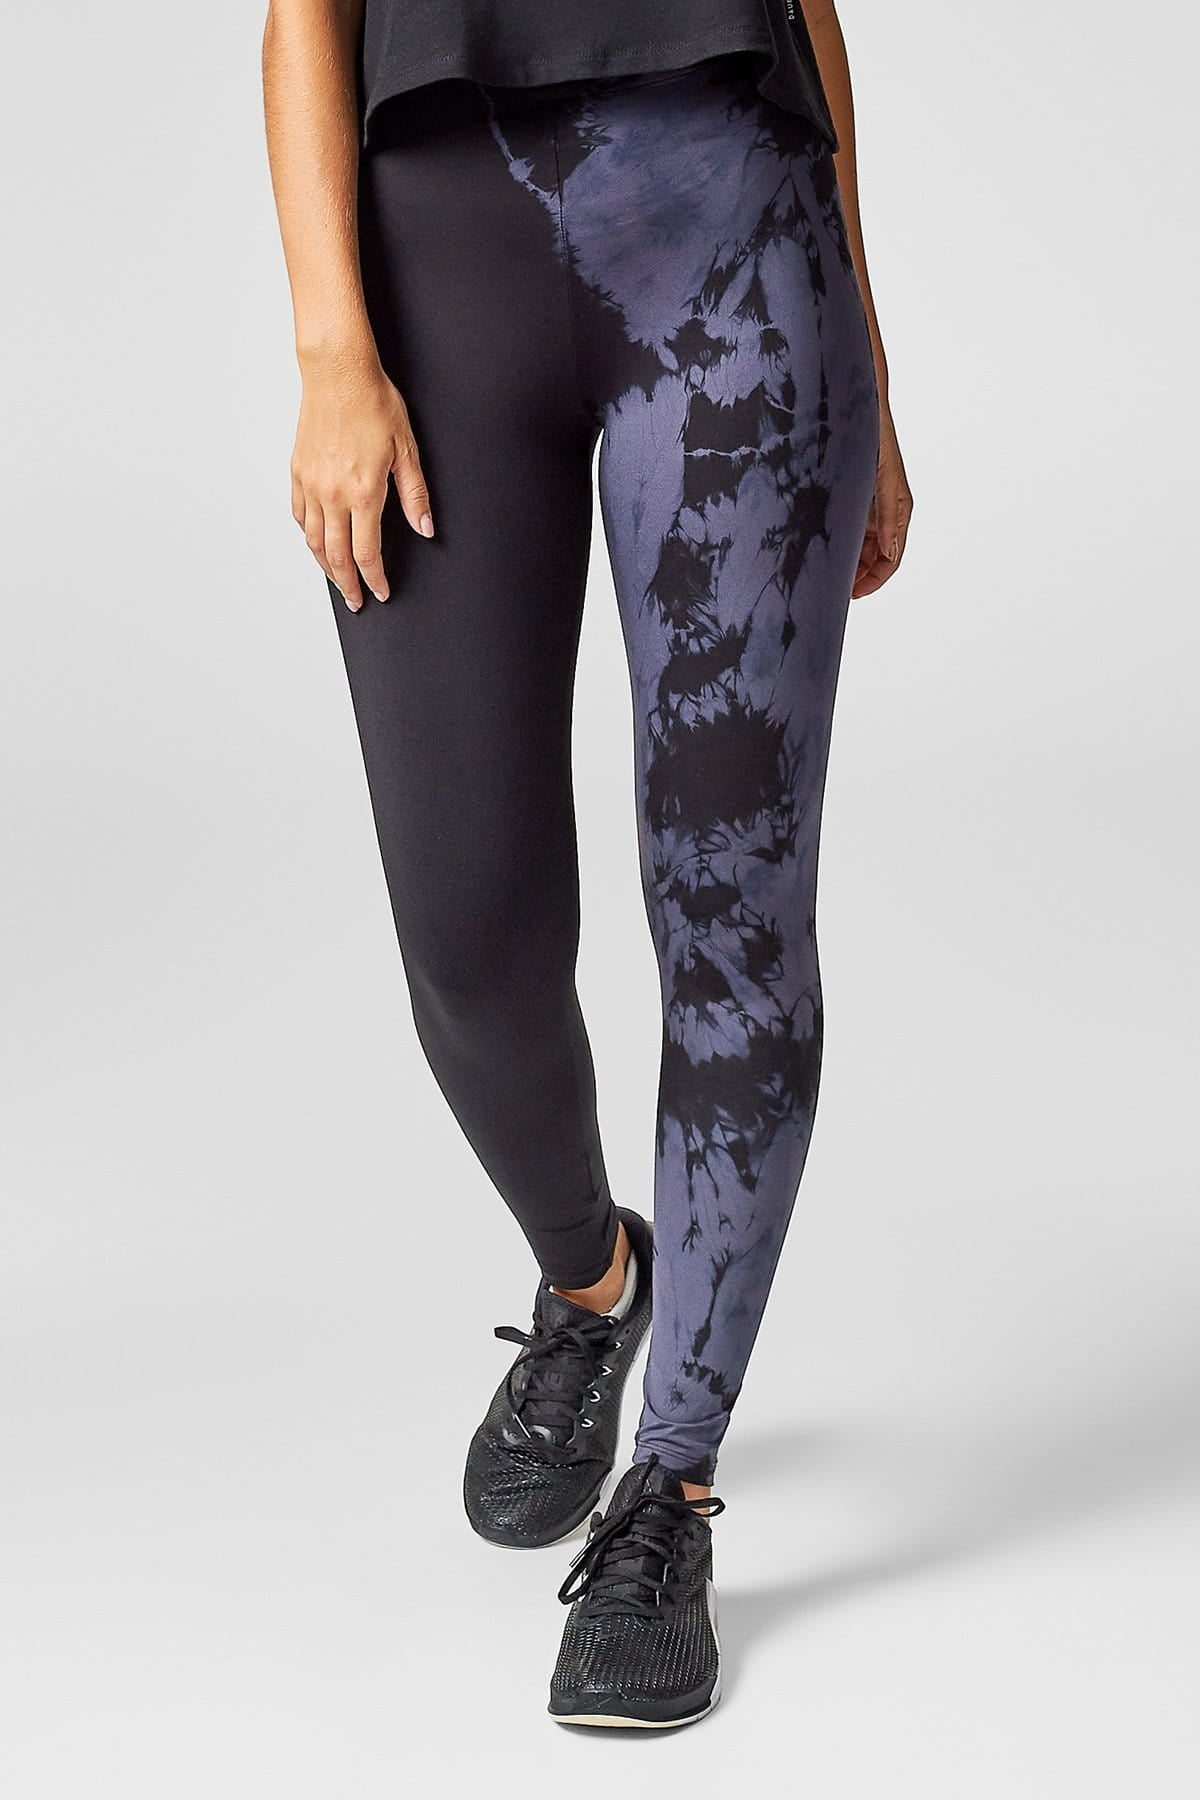 Adriana Leggings in Charcoal + Black